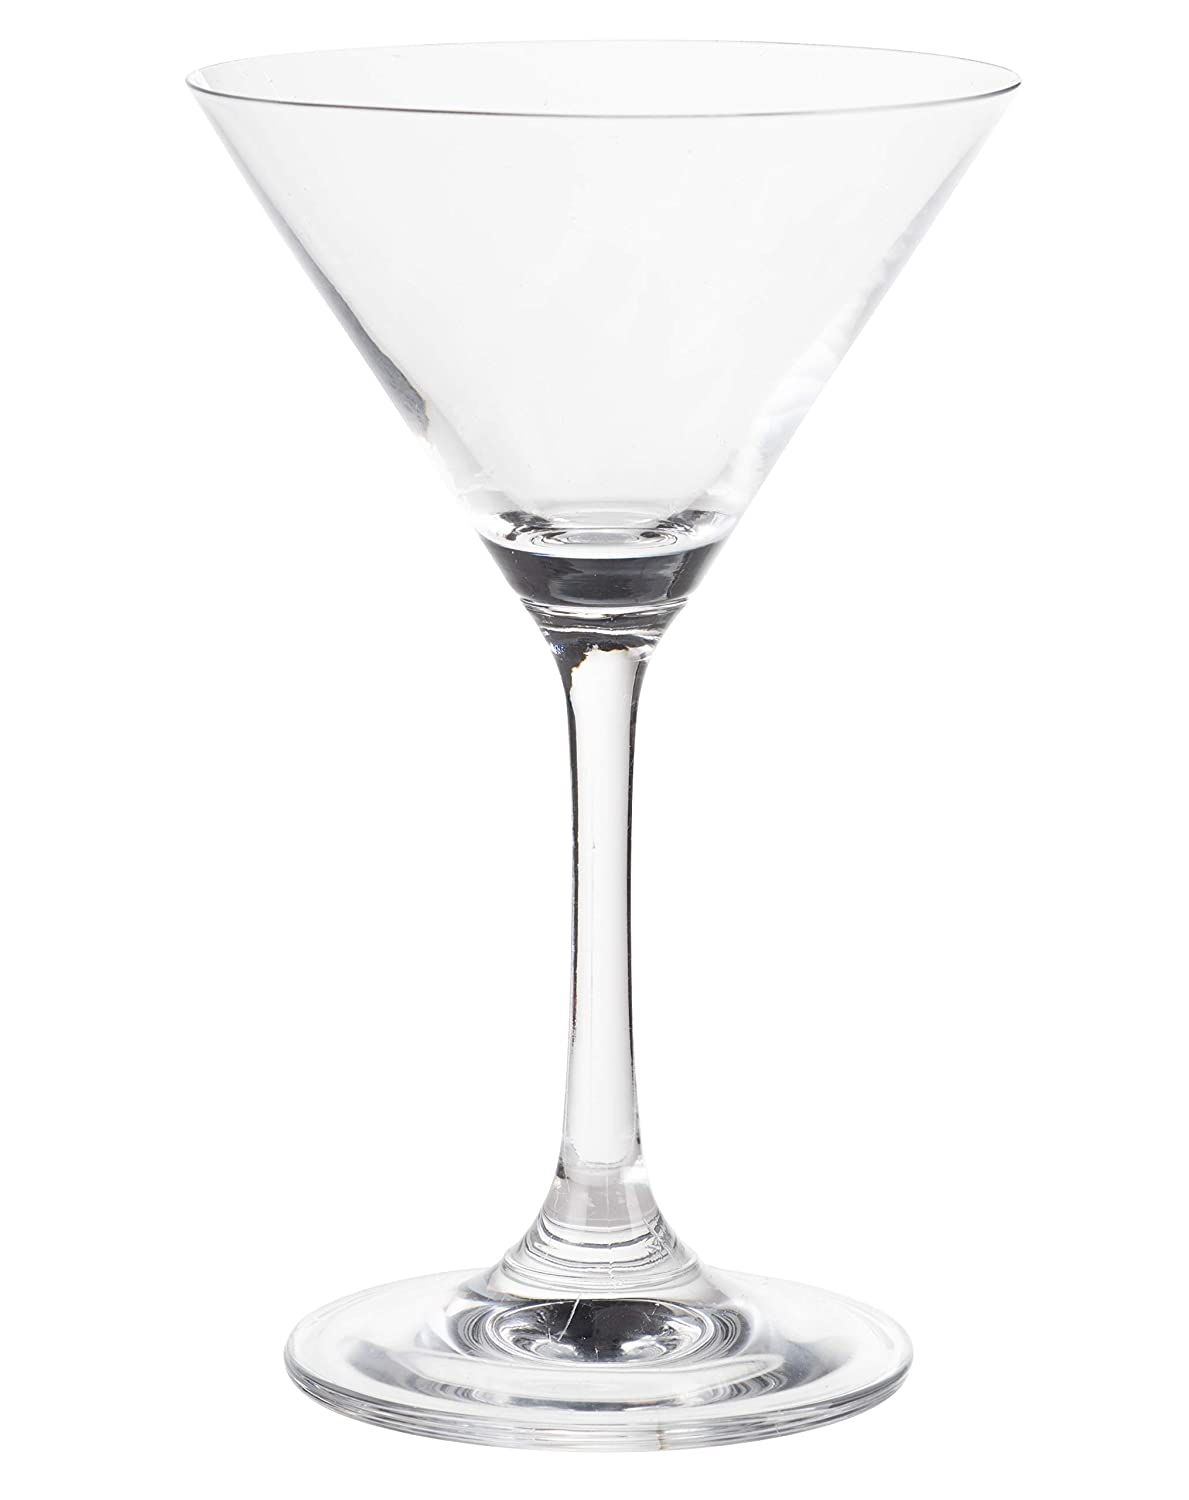 Wedding Birthday Celebrations Ideal Gifts for Housewarming Inverted Cone Shaped Stemware 6-Set Clear Classic 5-Ounce Cocktail Glasses Martini Glasses Bar Accessories